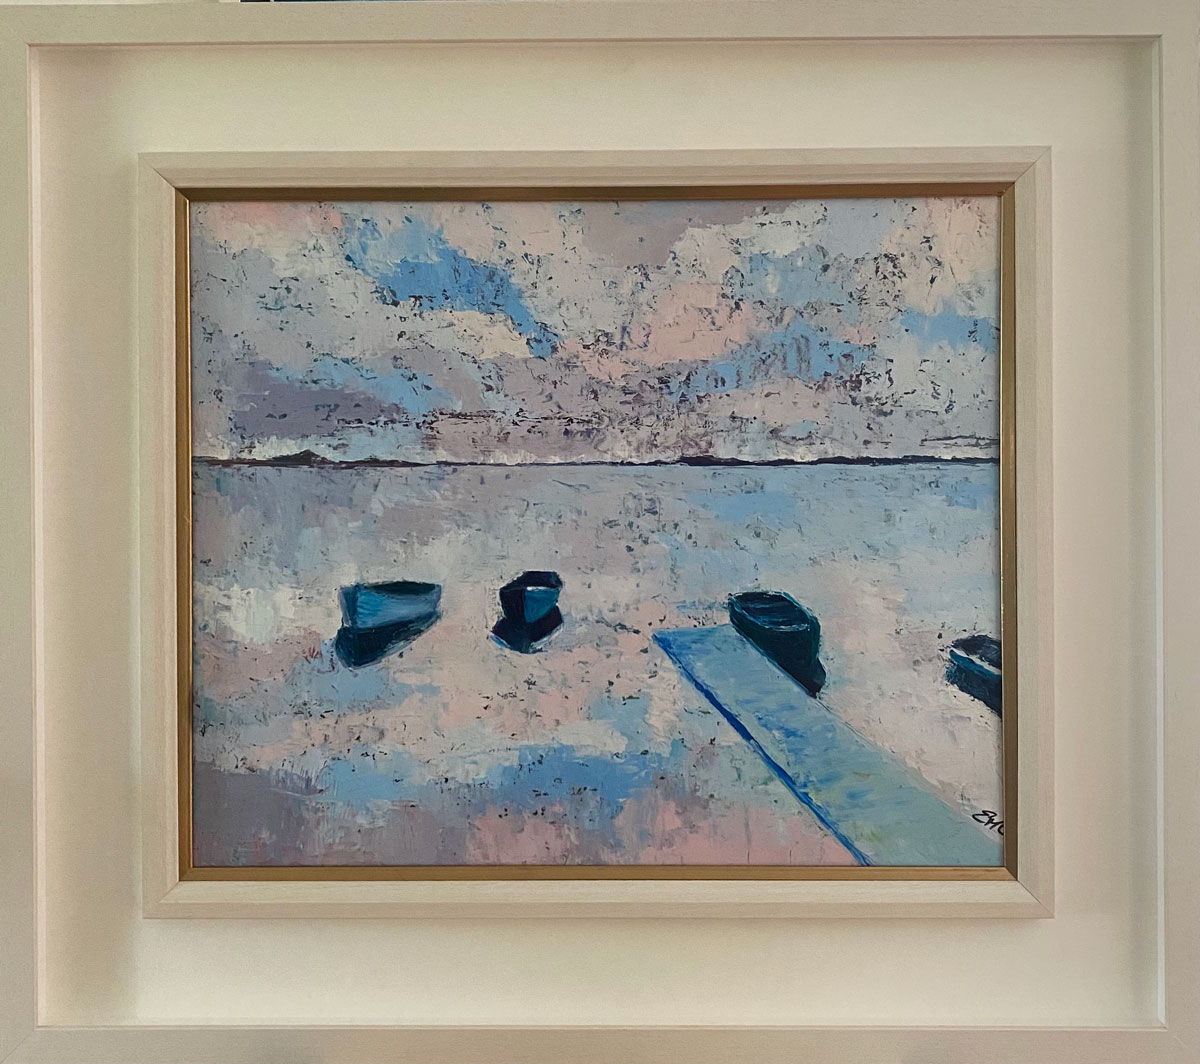 Lough Corrib - Seascape oil painting in a white wood frame